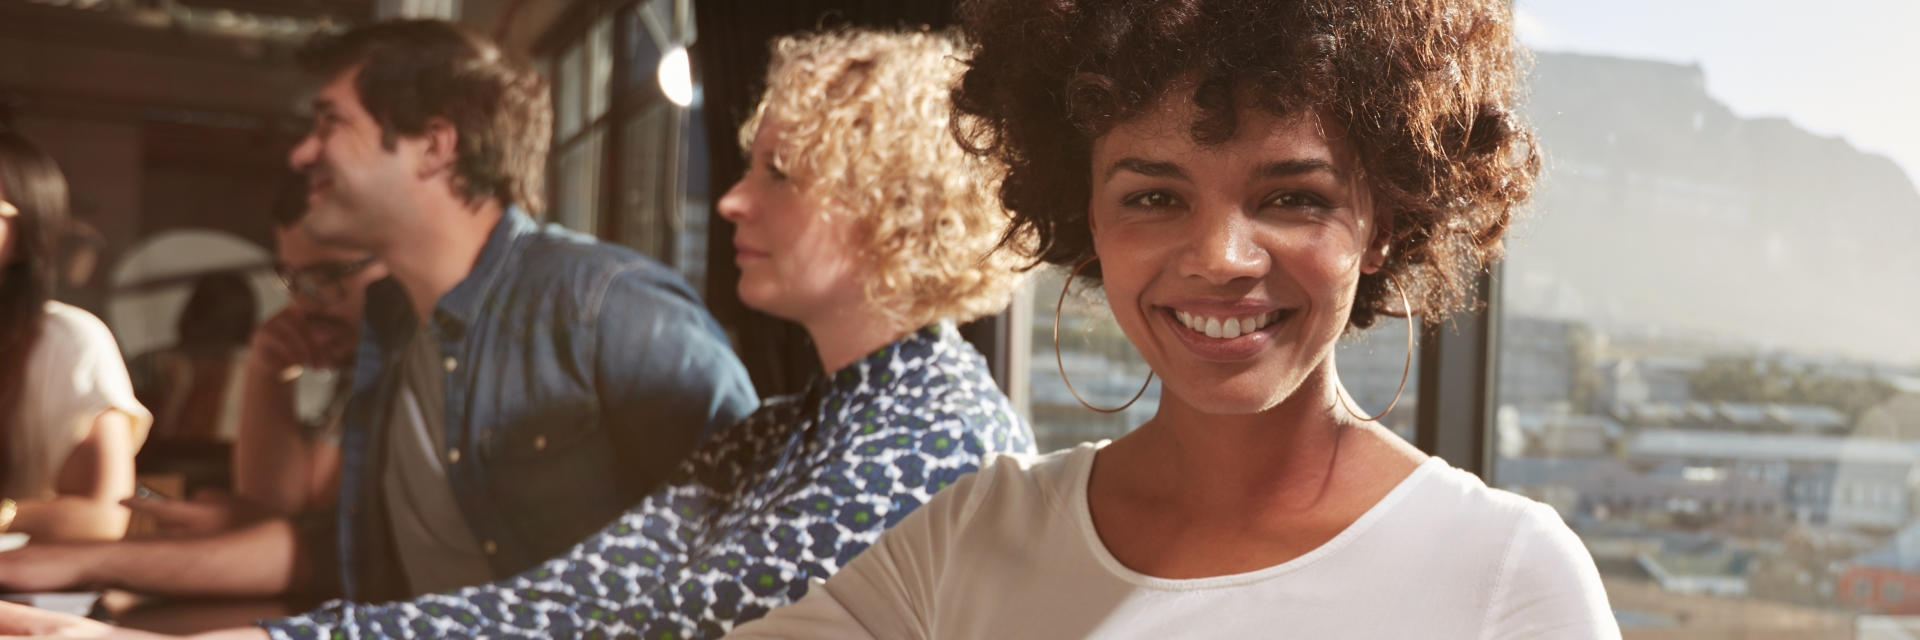 Cheerful Afro-American woman with a perfect smile socializing with friends.